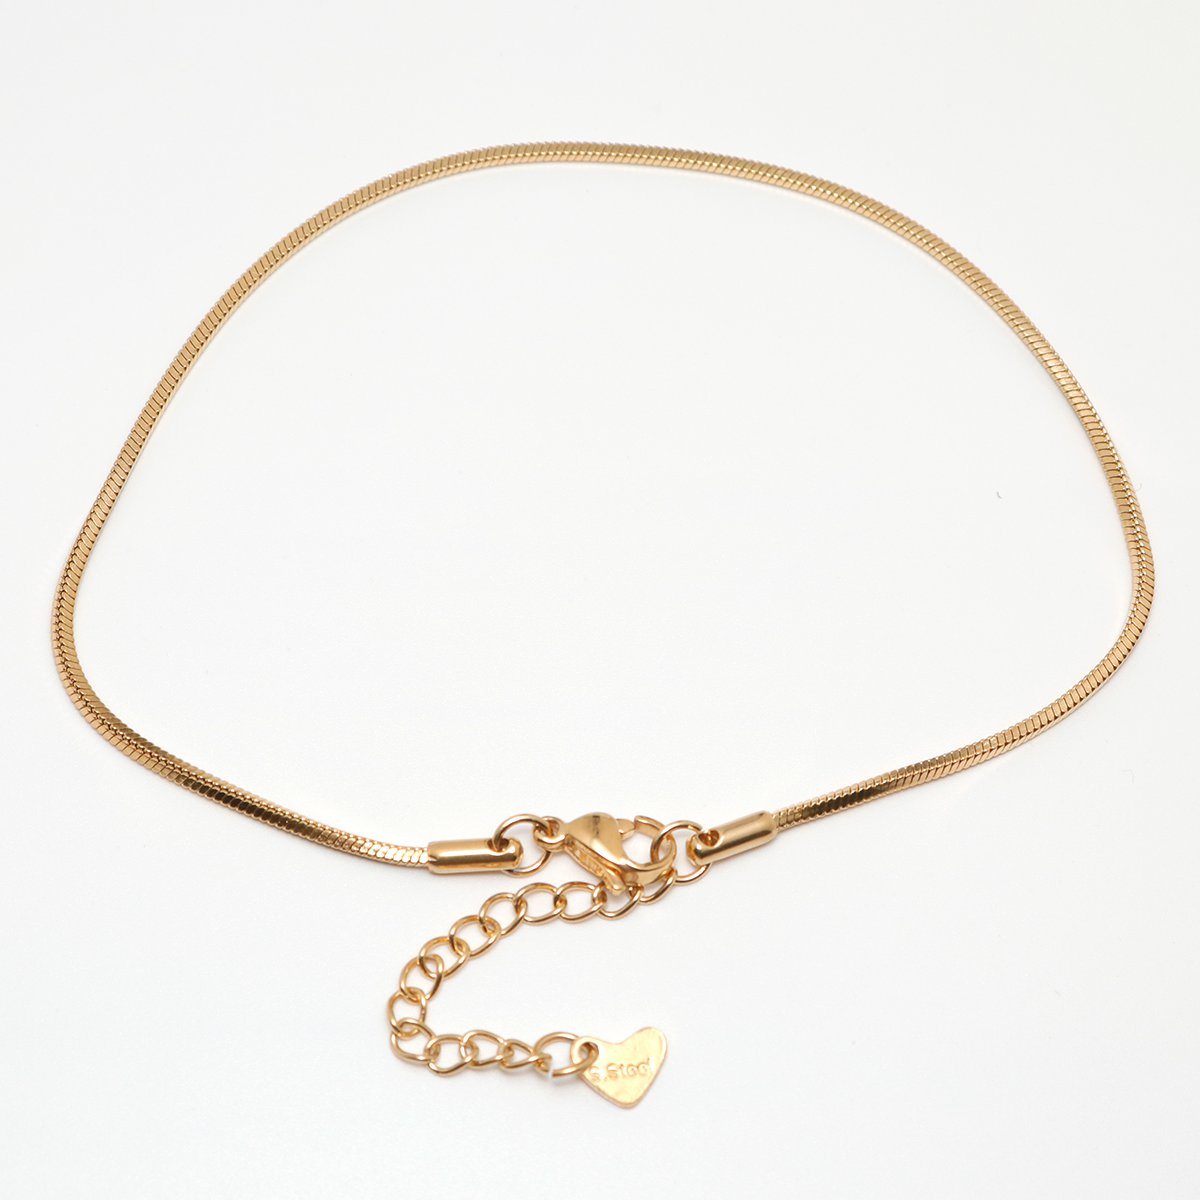 304 Stainless Steel Anklet Gold Color 23.3cm(9 1/8